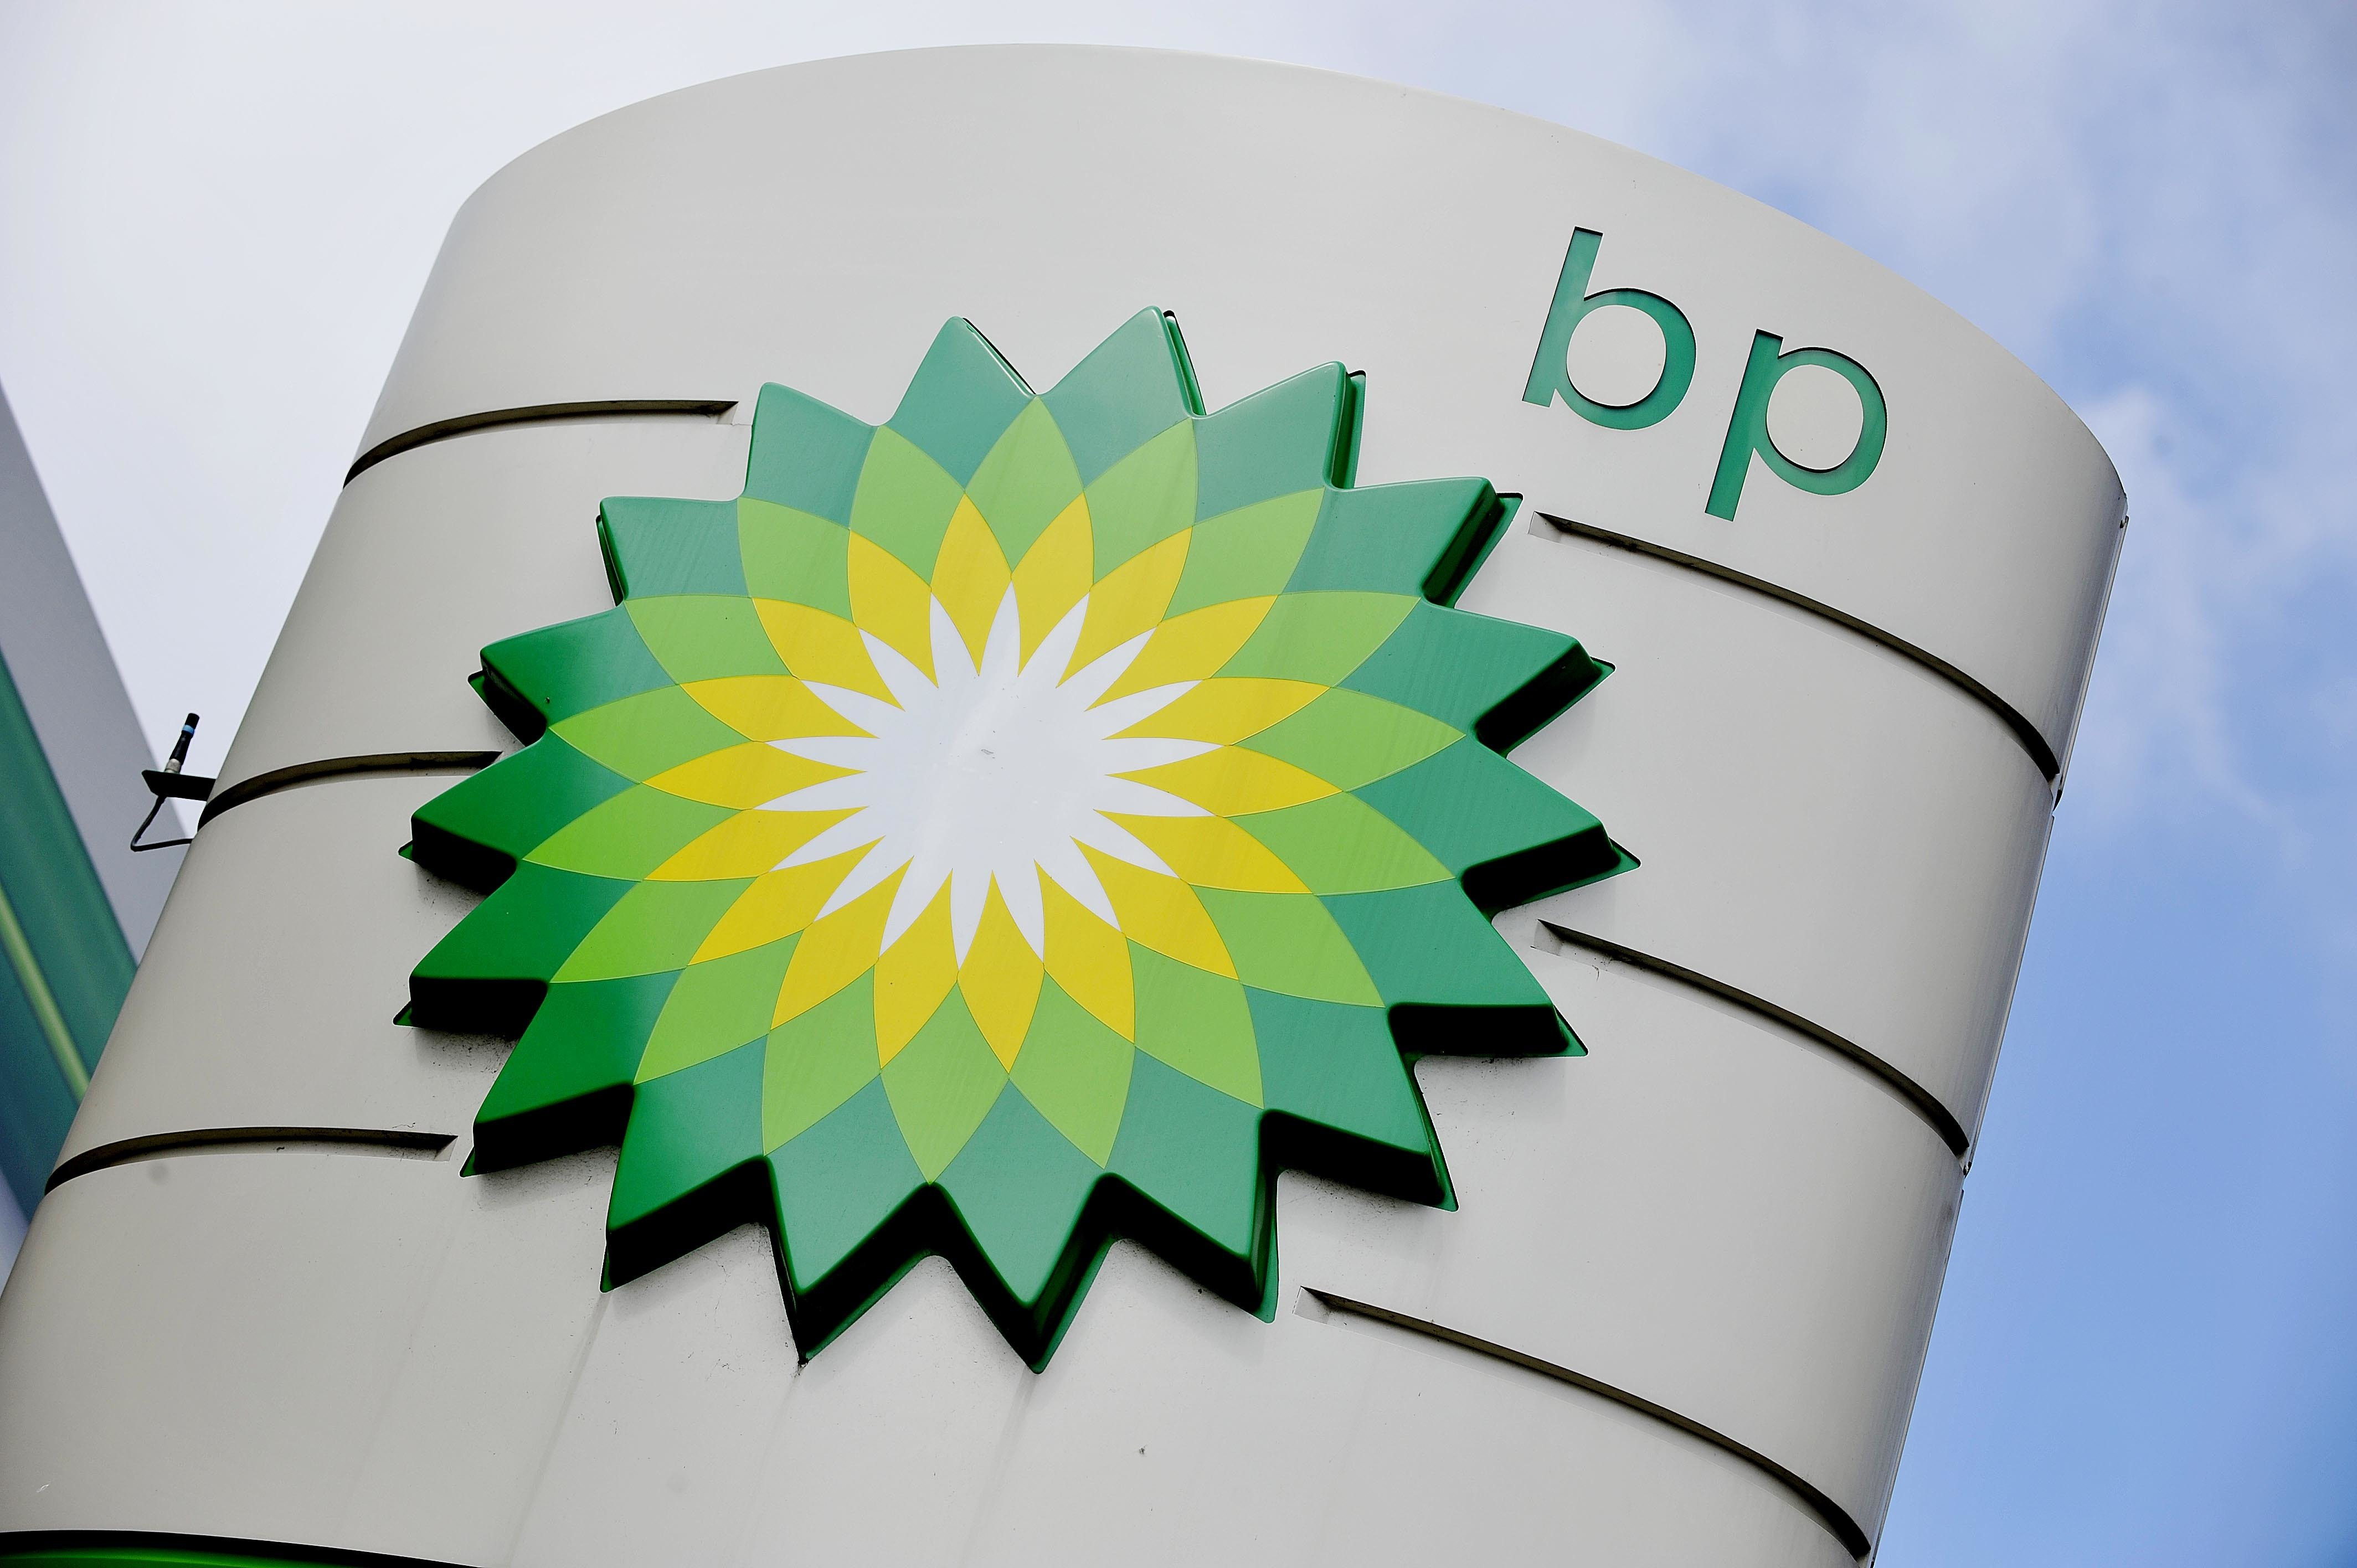 BP cuts dividend for first time since Deepwater Horizon after huge loss